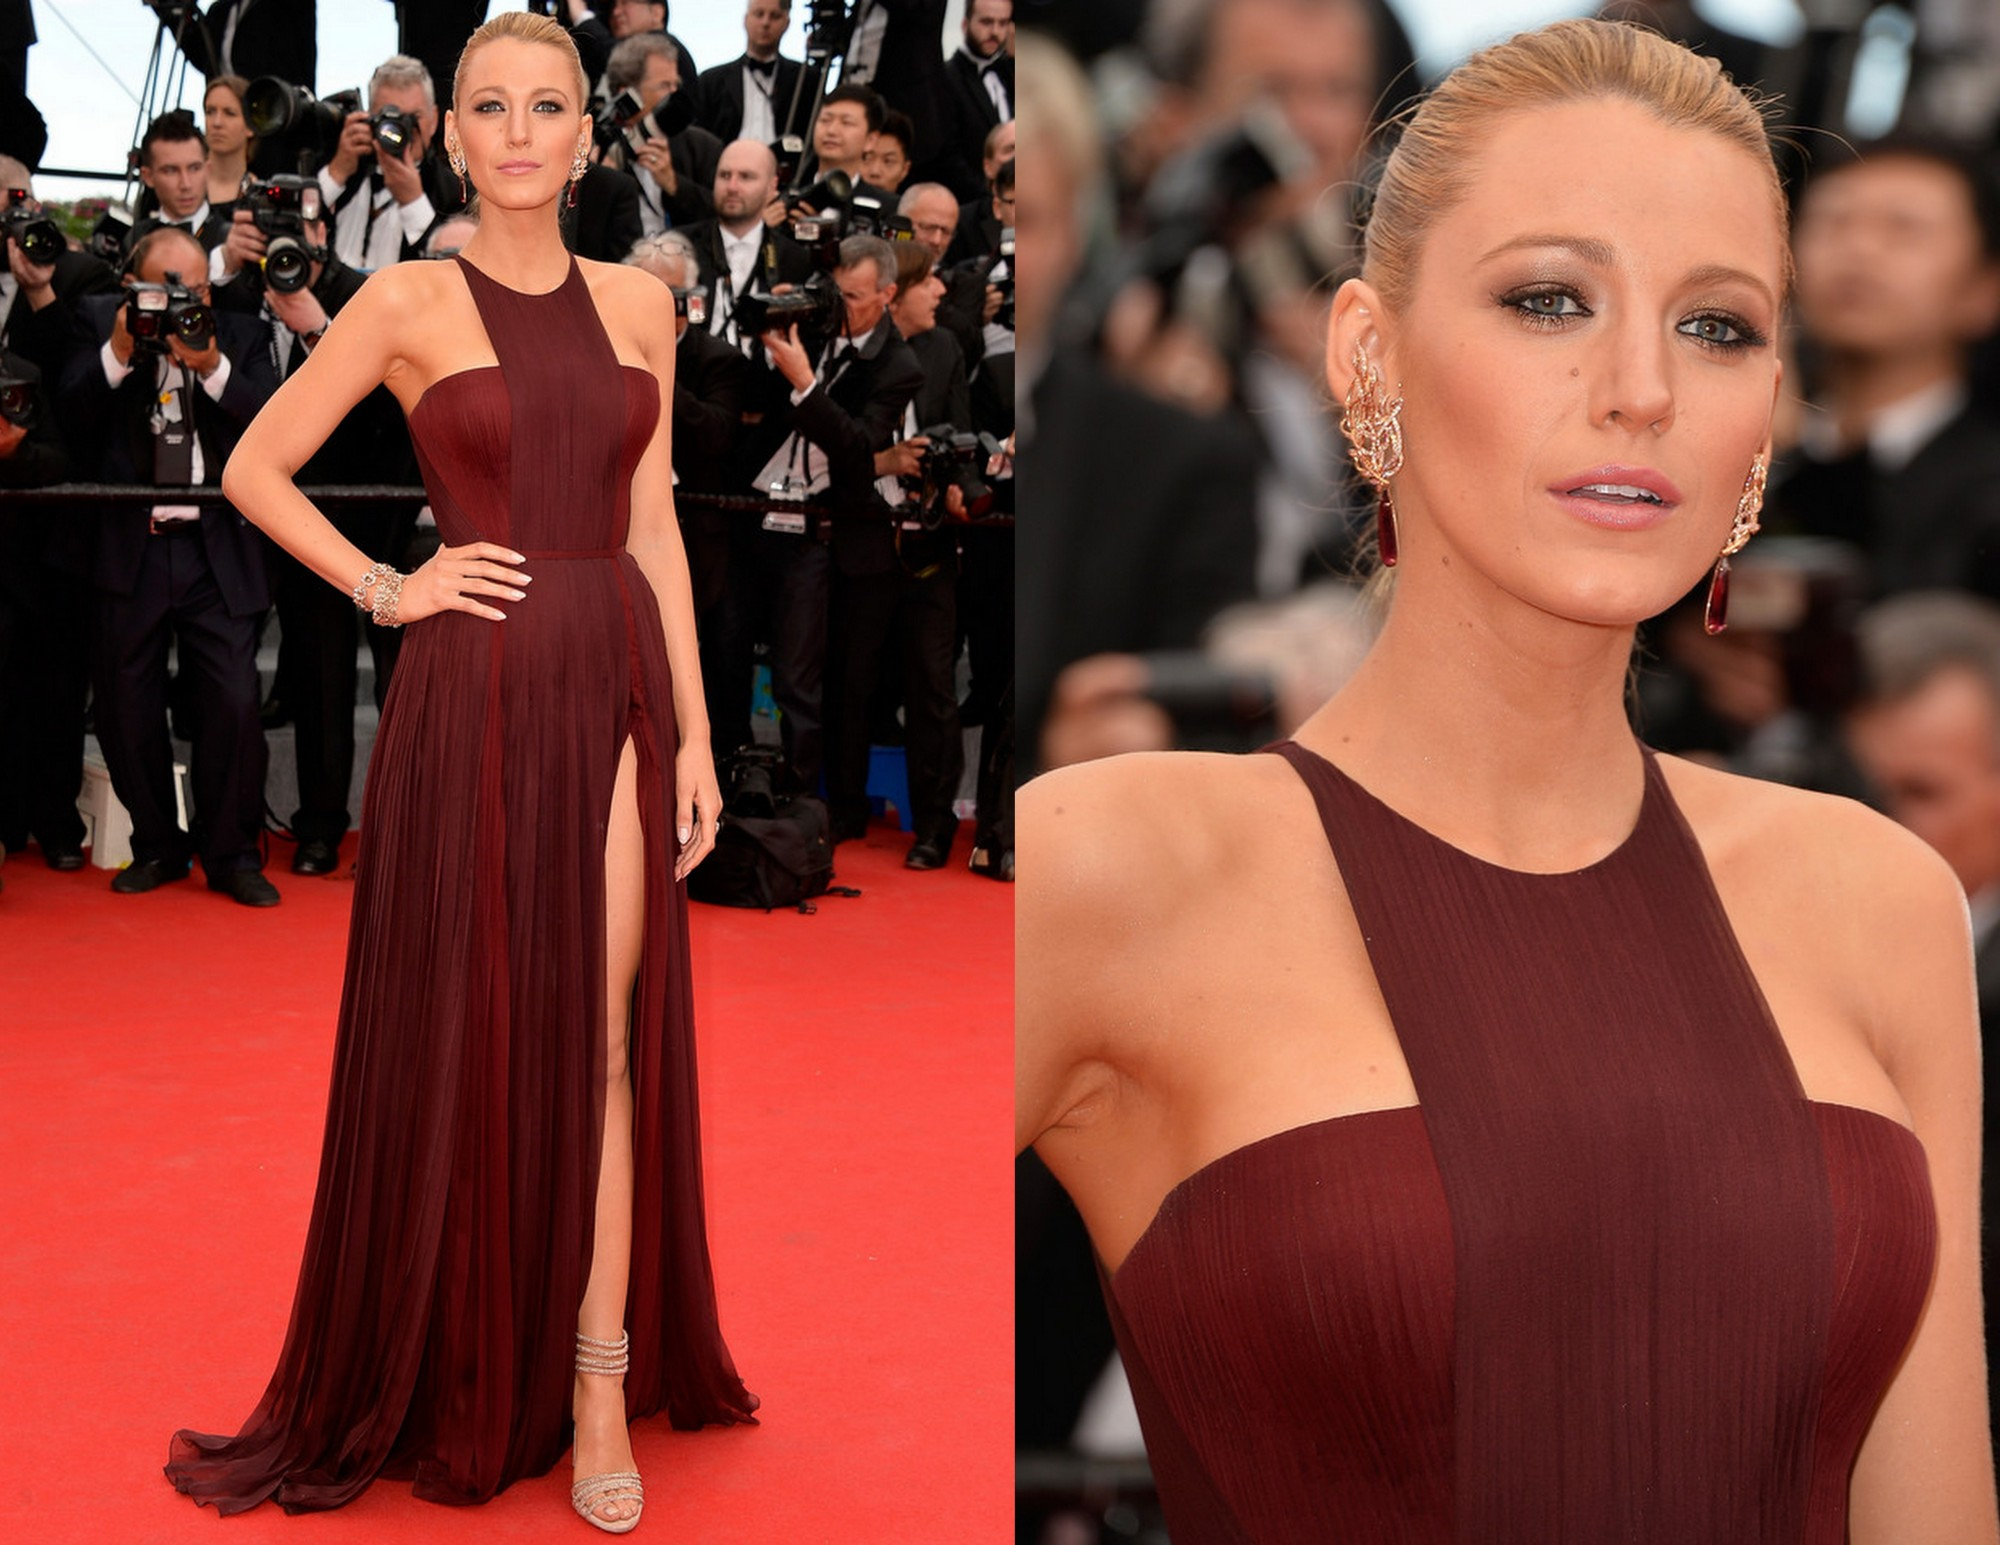 Blake-Lively-in-Gucci-2014-Cannes-Film-Festival-Best-Dressed-e1400113780729